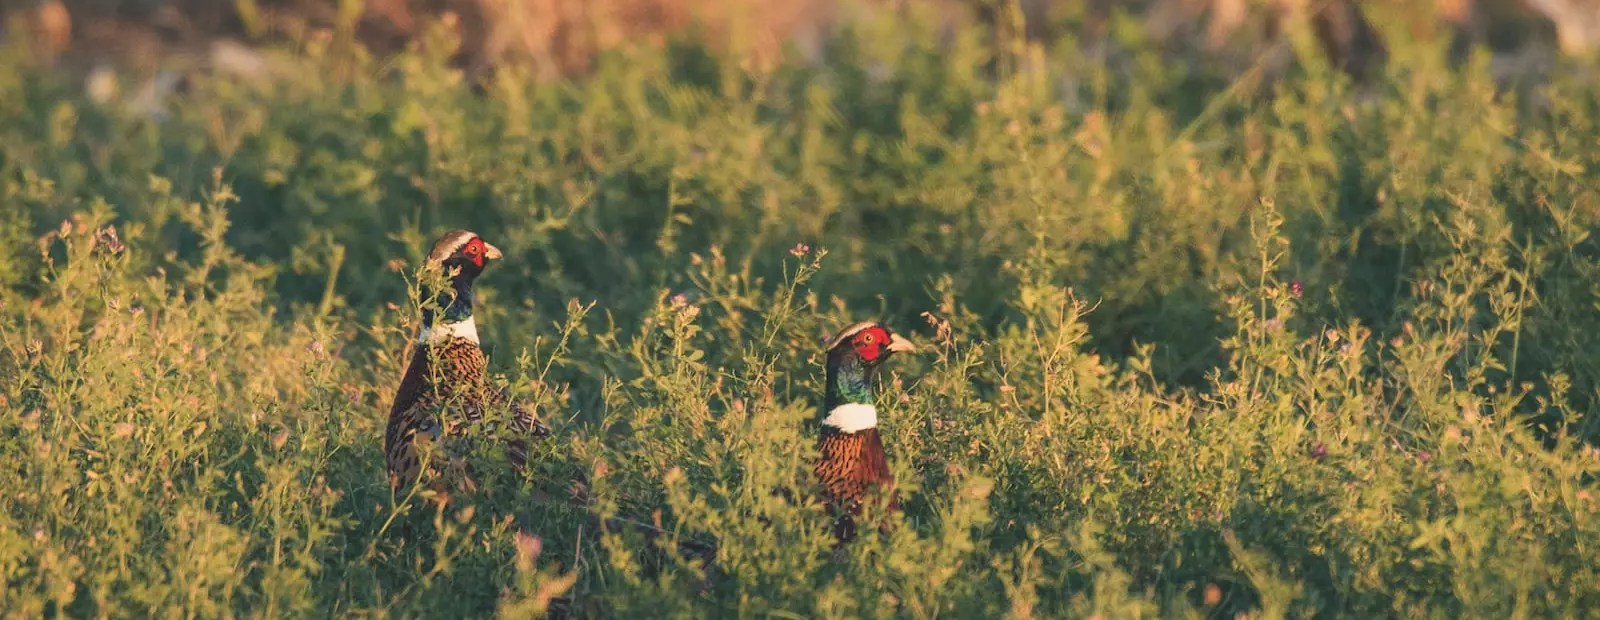 Two rooster pheasants stand in a green field